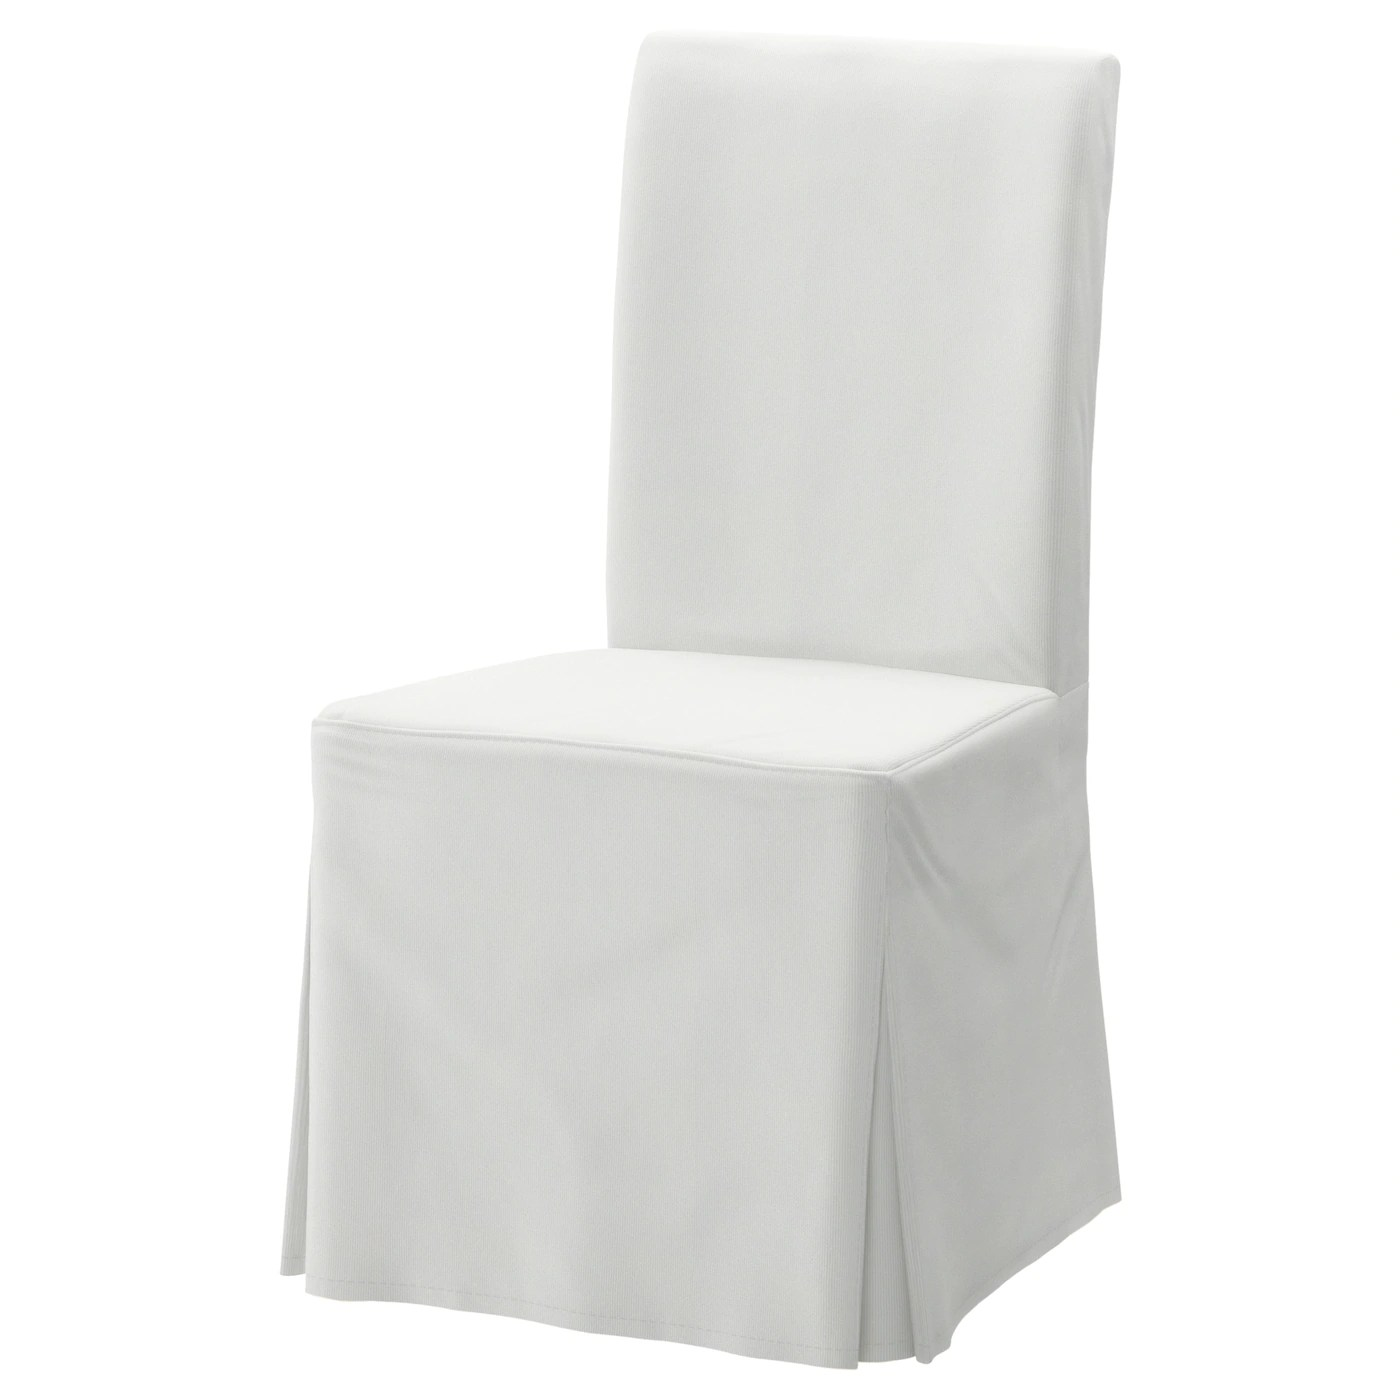 chair covers pottery barn childrens chairs dining ikea dublin ireland